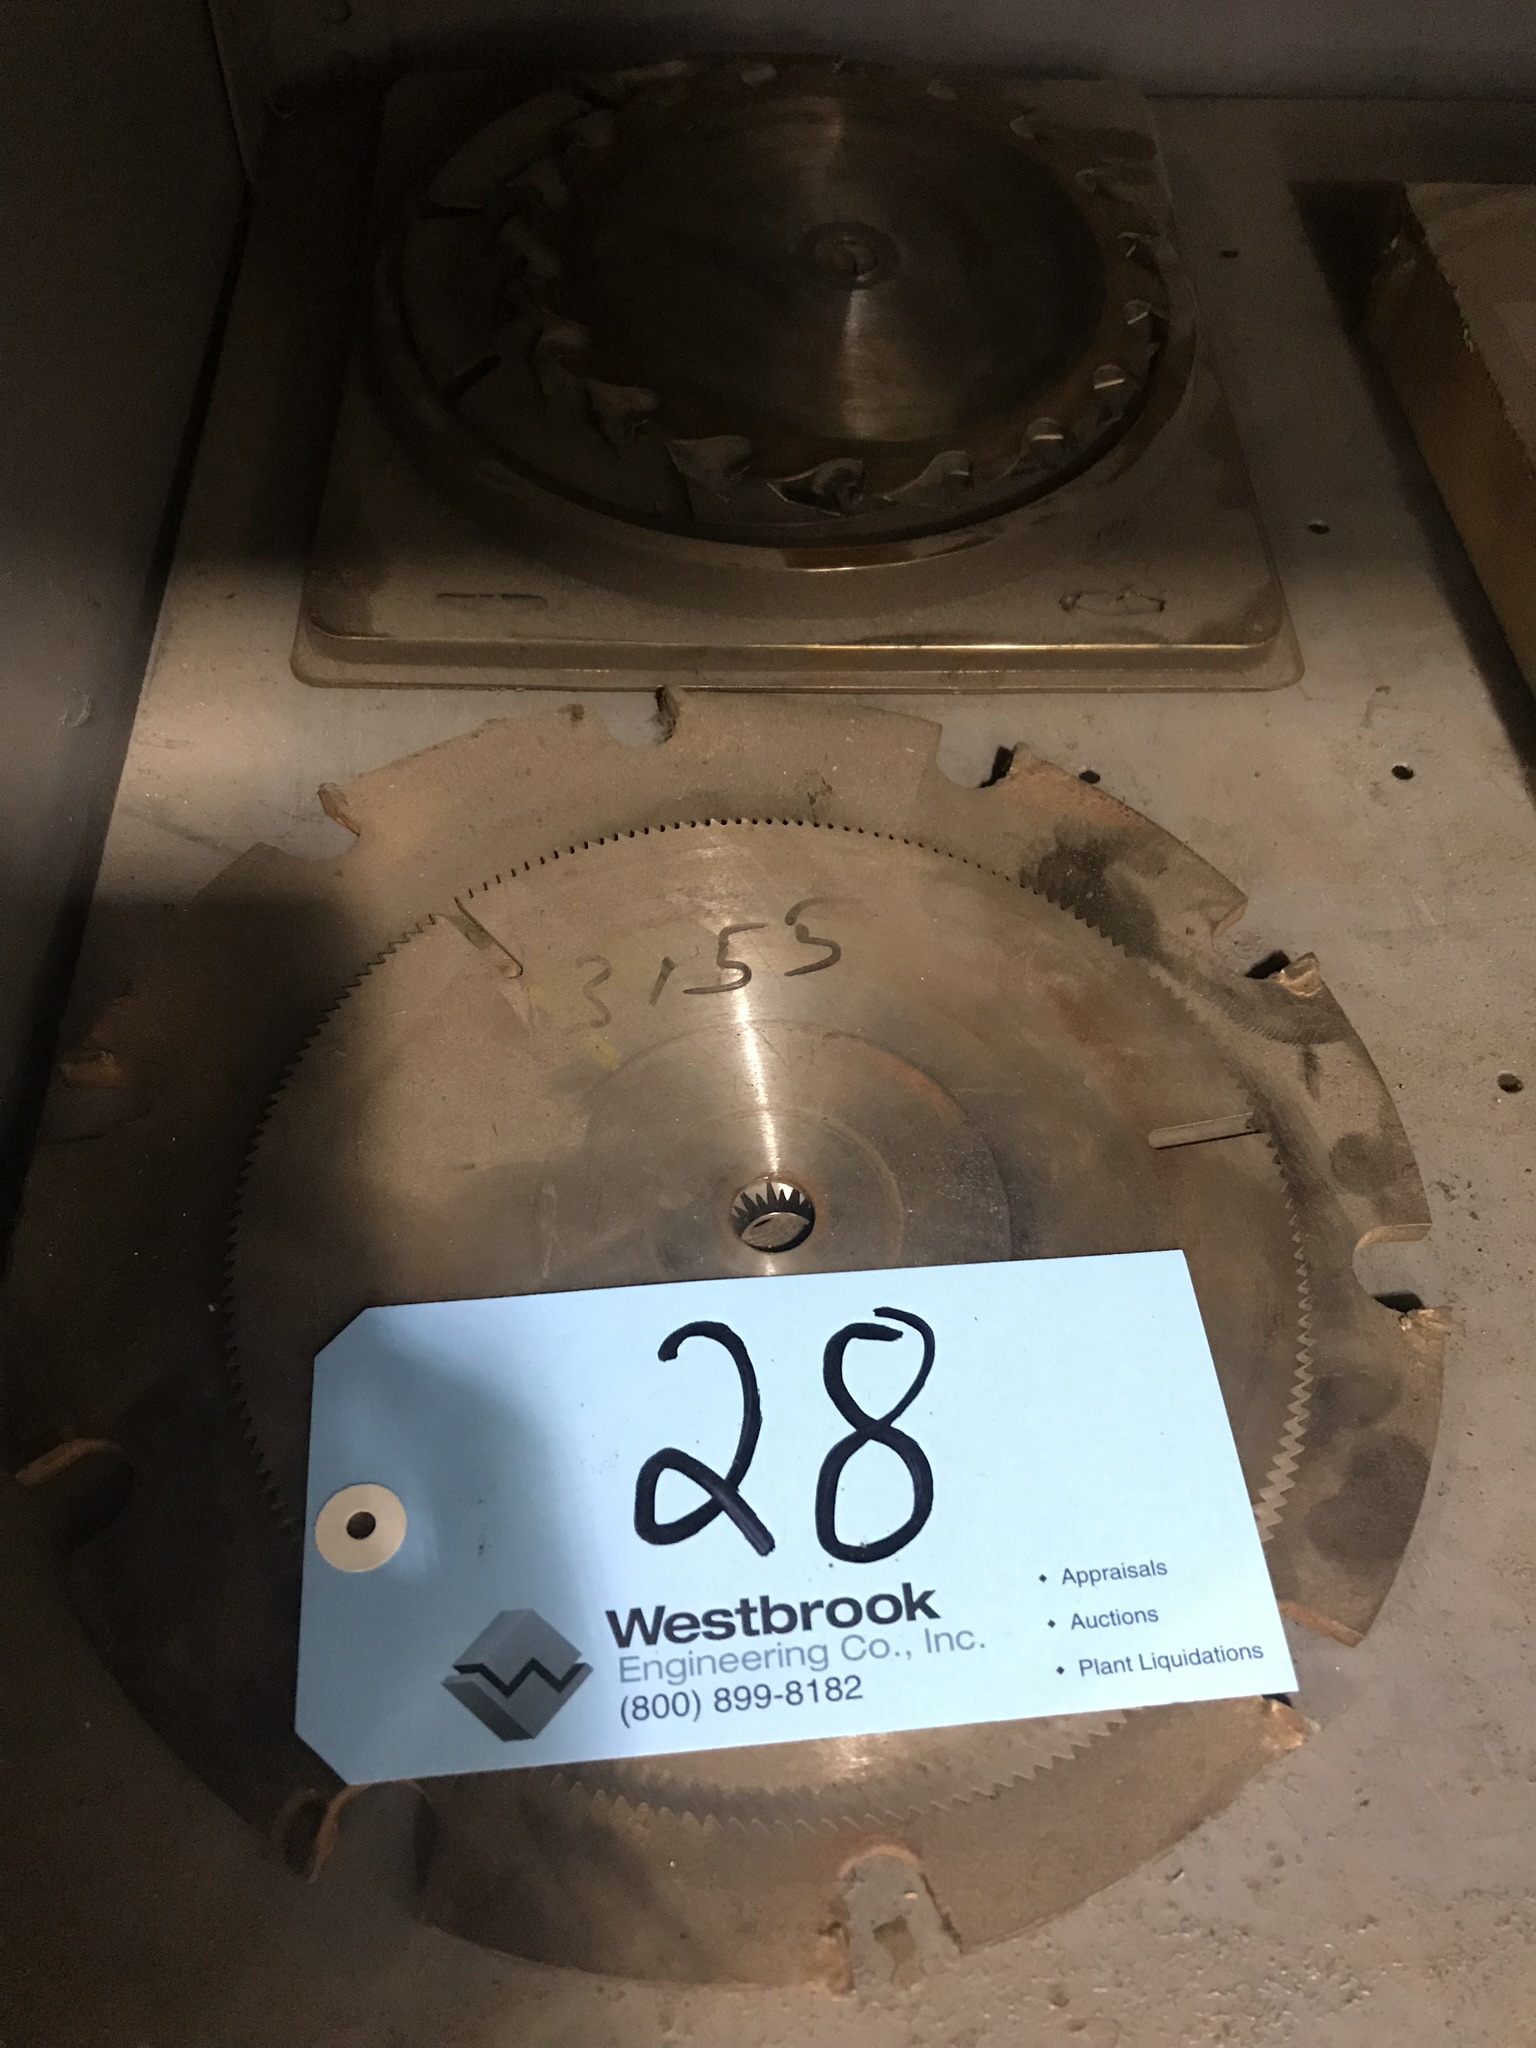 Lot-Asst'd Saw Blades in (2) Stacks